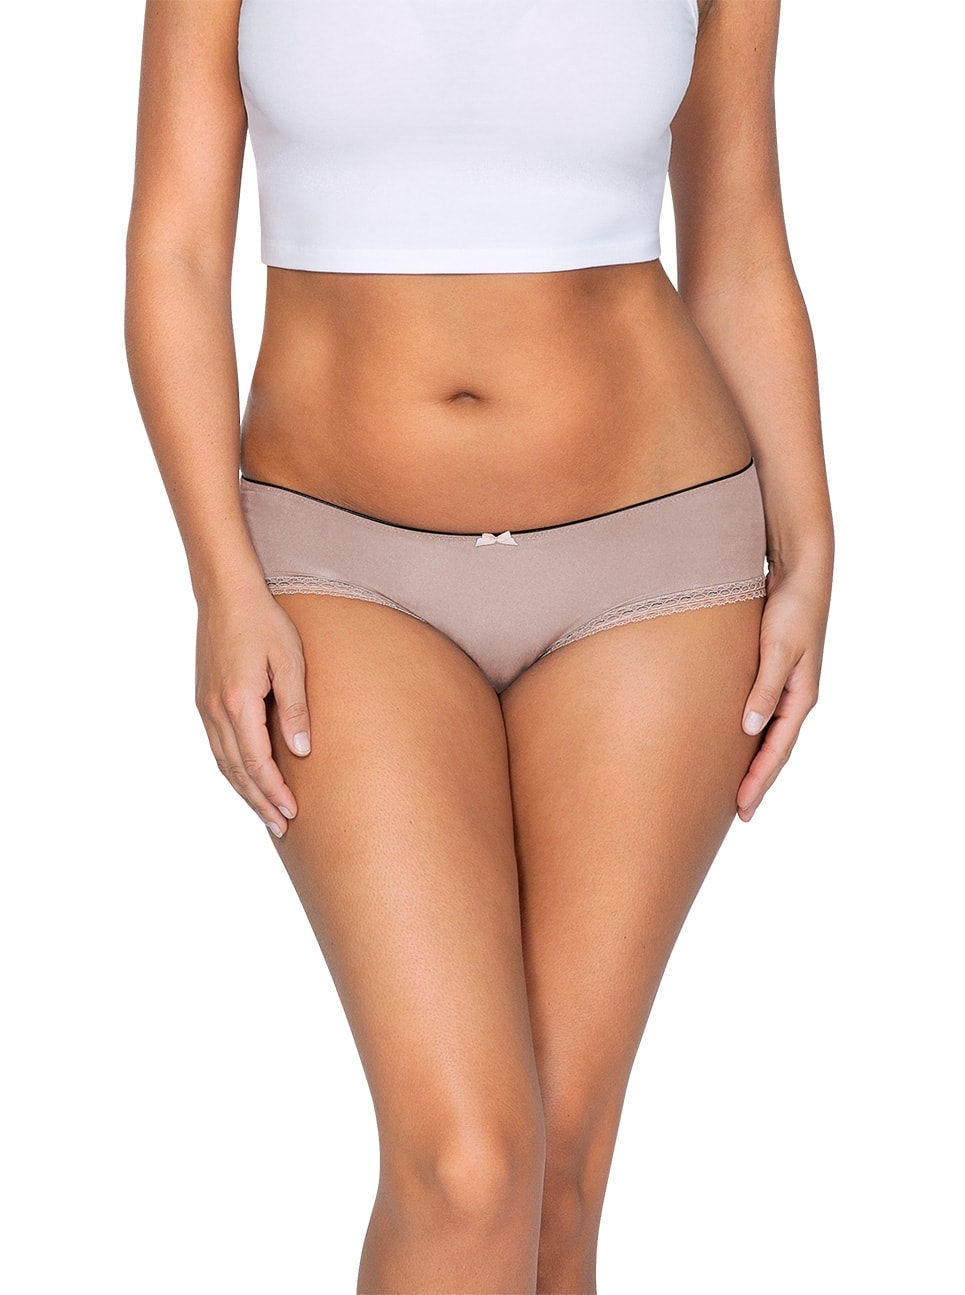 ParfaitPantyHipster PP501 B NudeFront main - Panty So Lovely Hipster European Nude PP501